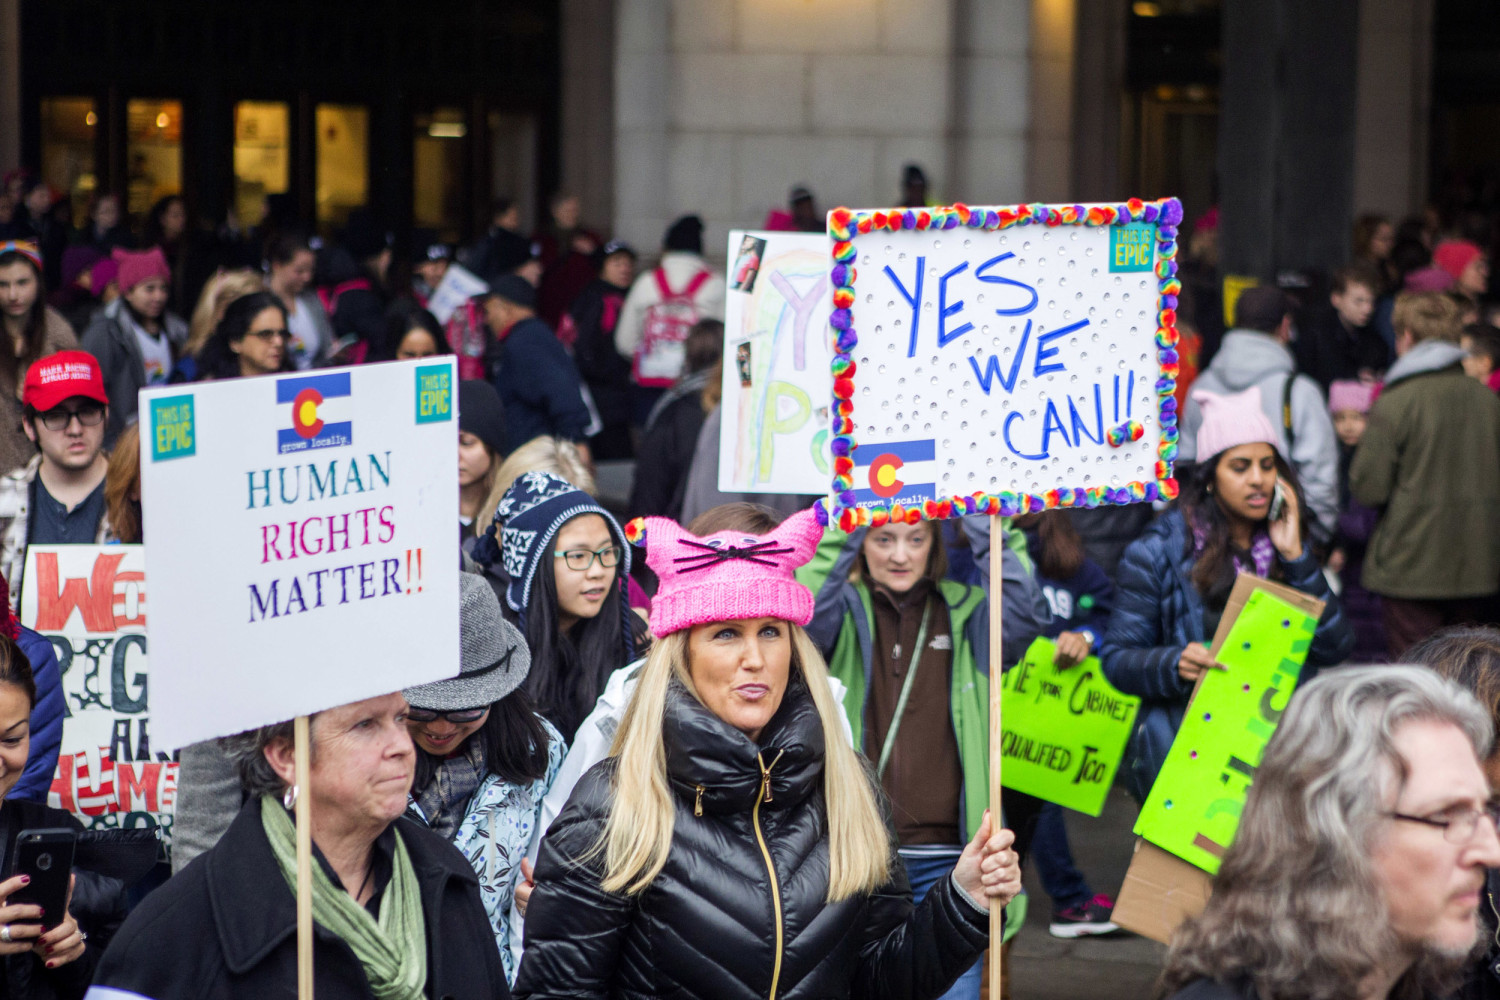 Womens March Brings Flood Of Pink Hats Fiery Rhetoric To - Womens march map of the us